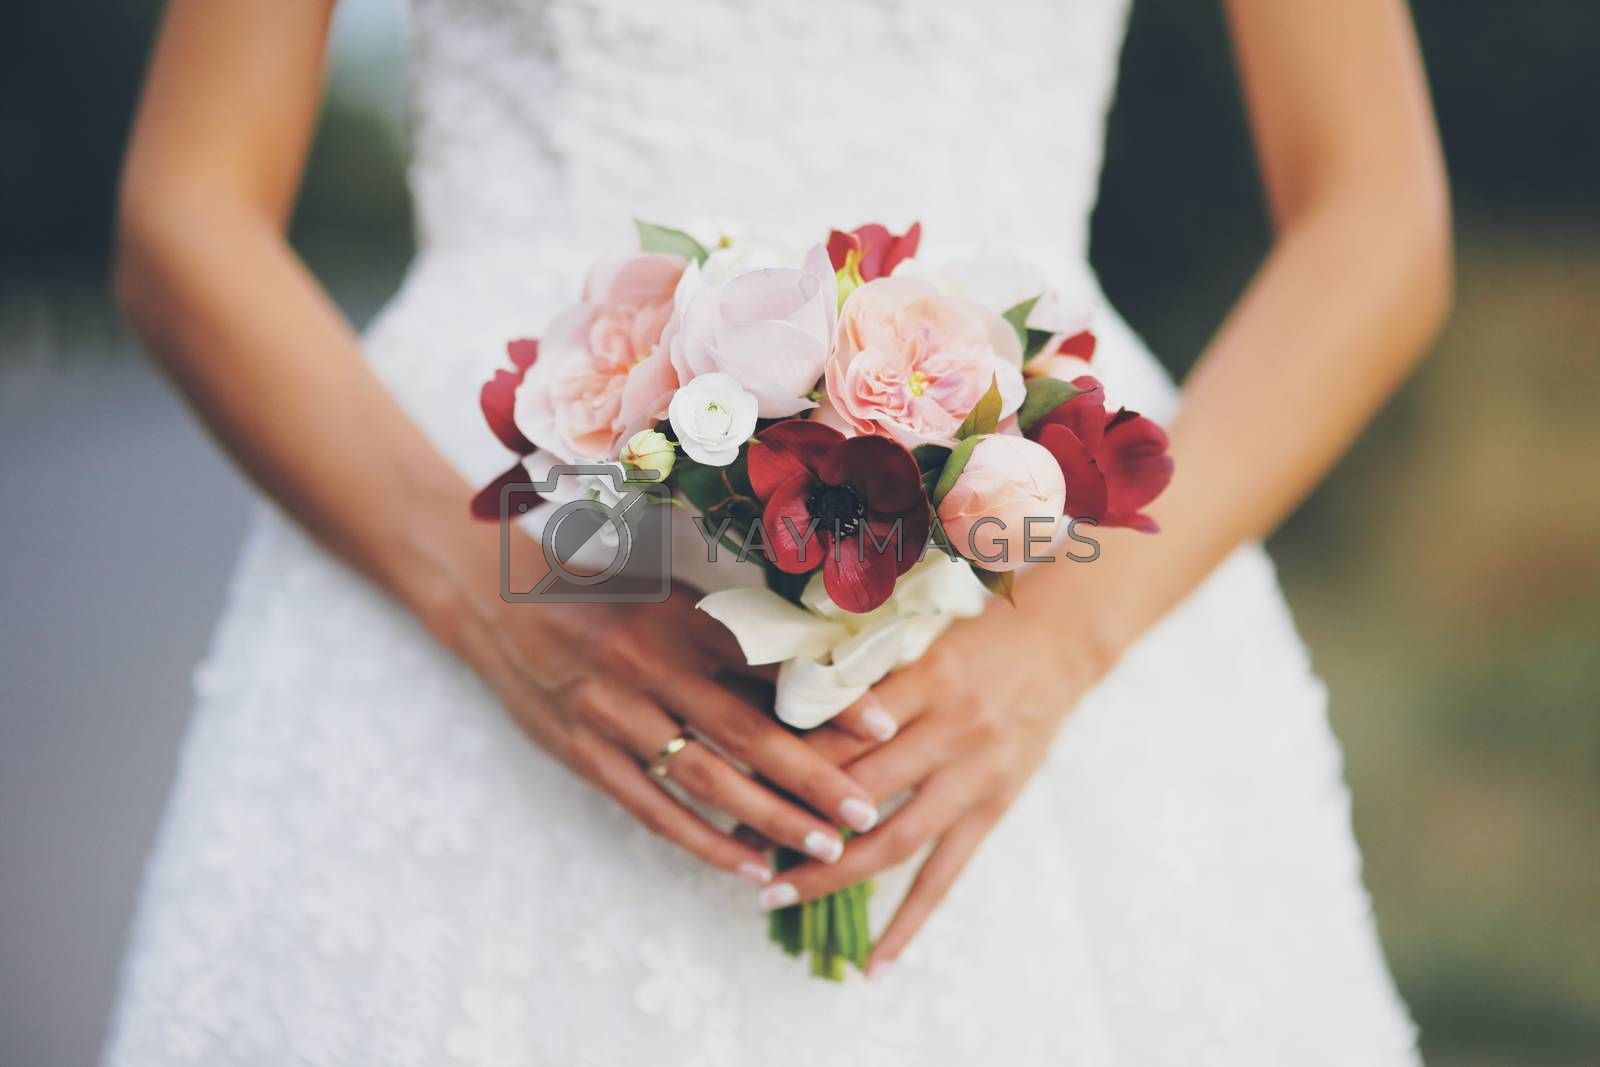 The bride holds a wedding bouquet. Women's hands with flowers. Wedding. A beautiful couple. High quality photo